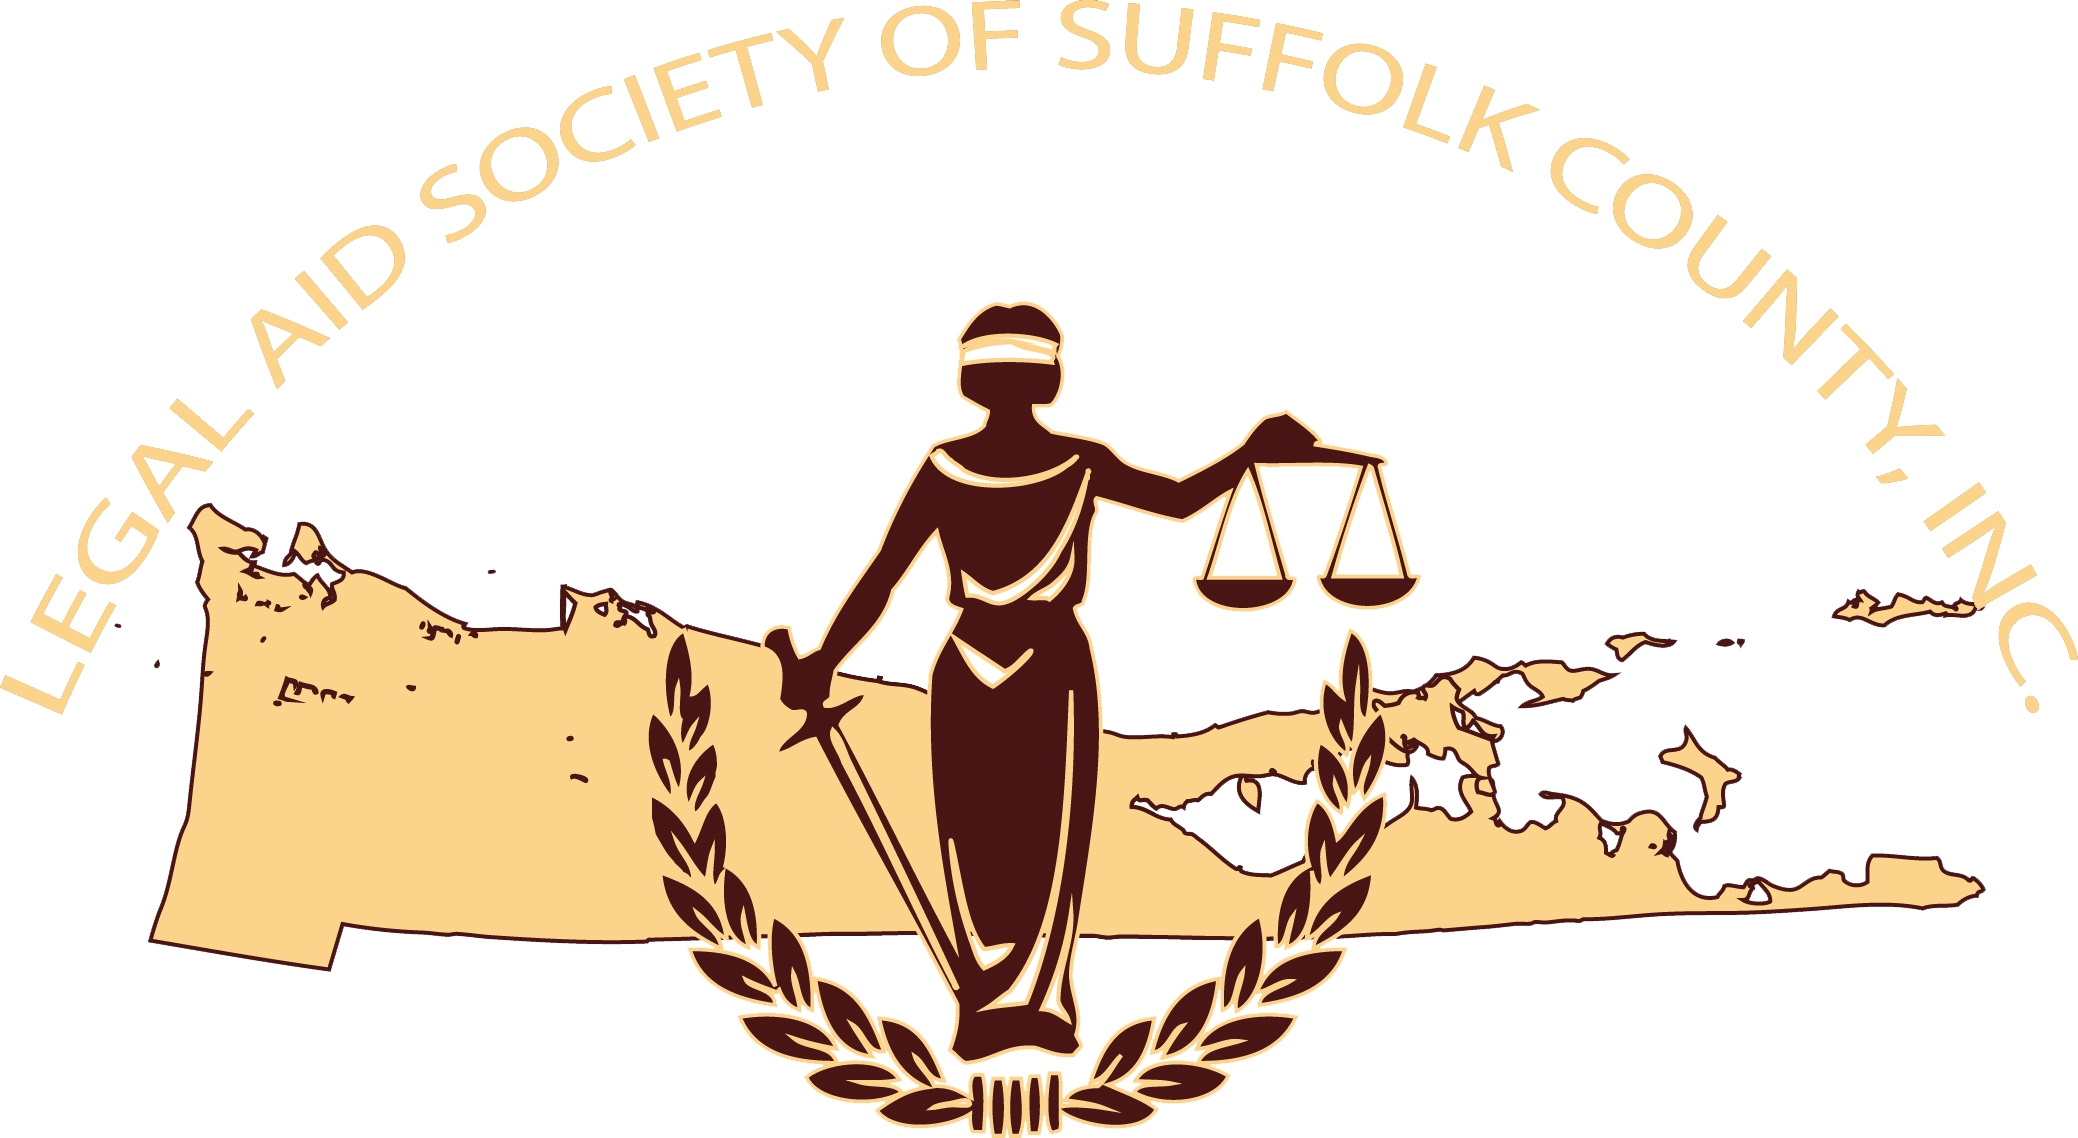 Law practices suffolk county. Laws clipart legal aid